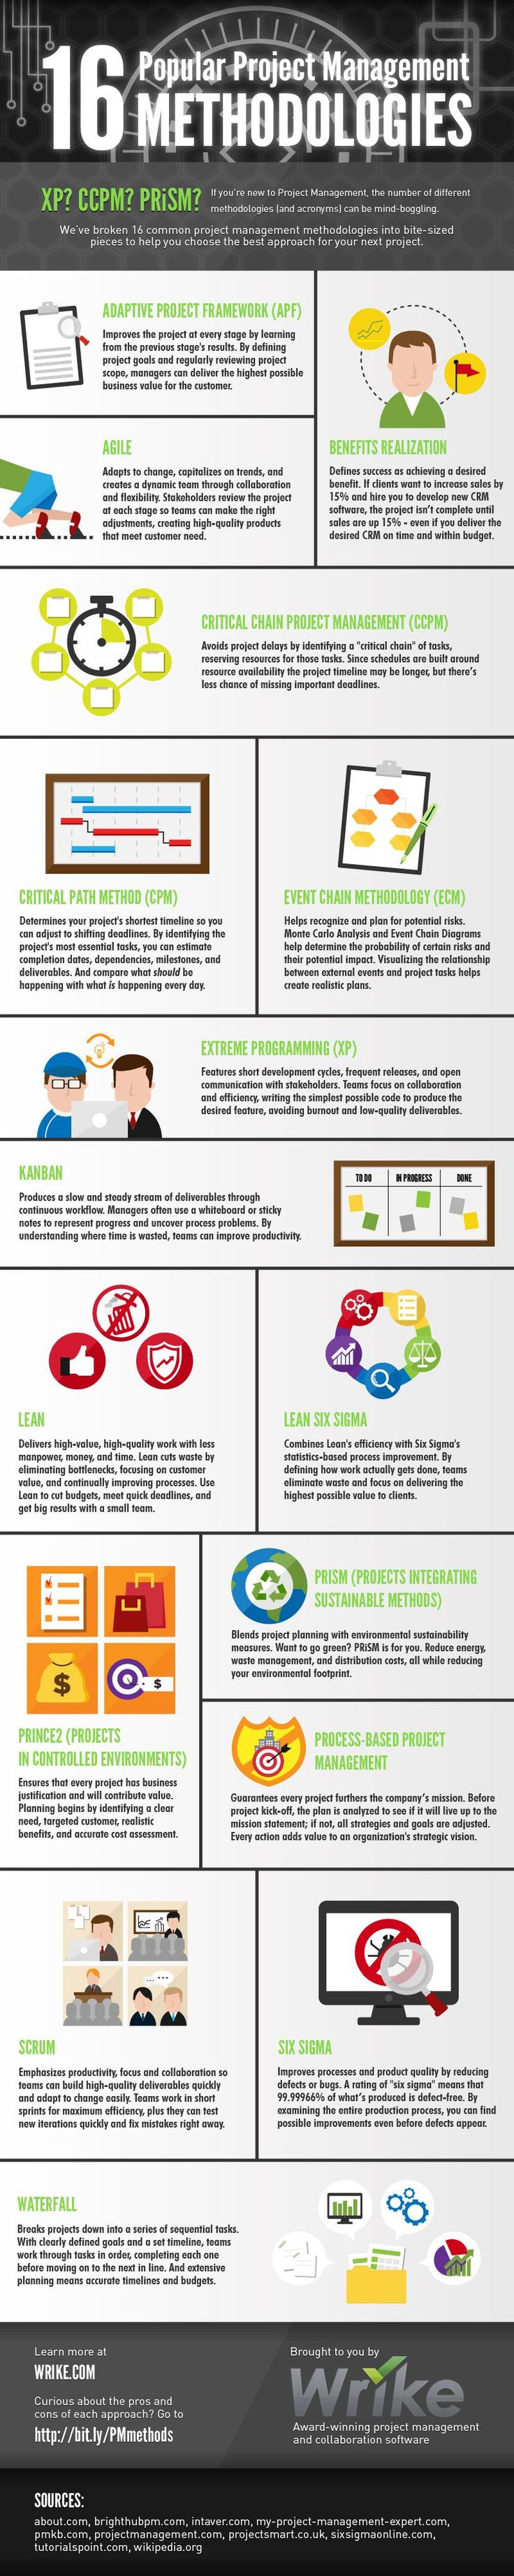 16 Popular Project Management Methodologies #infographic #ProjectMenagement #Management An MBA can always help to get your dream job, or we can help you get that dream job right away. http://recruitingforgood.com/